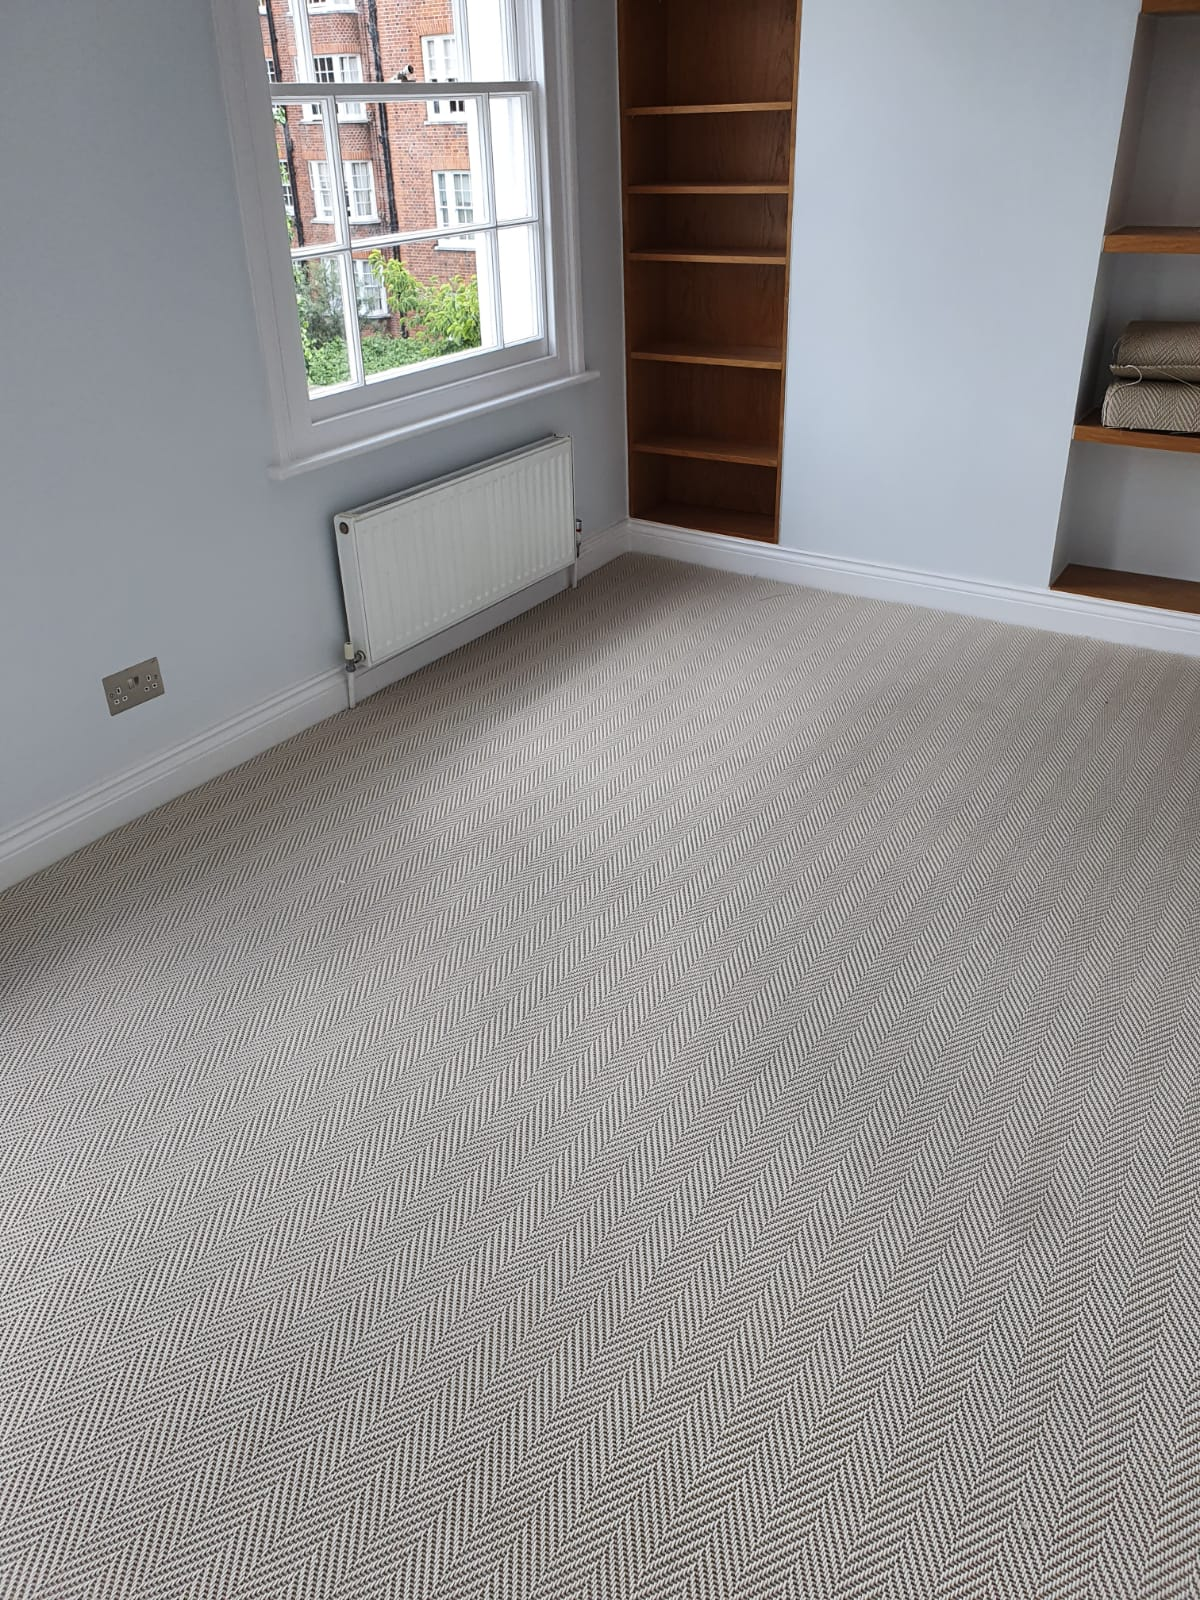 Unnatural Flooring New England Sugar Hill Carpet in Ealing 3